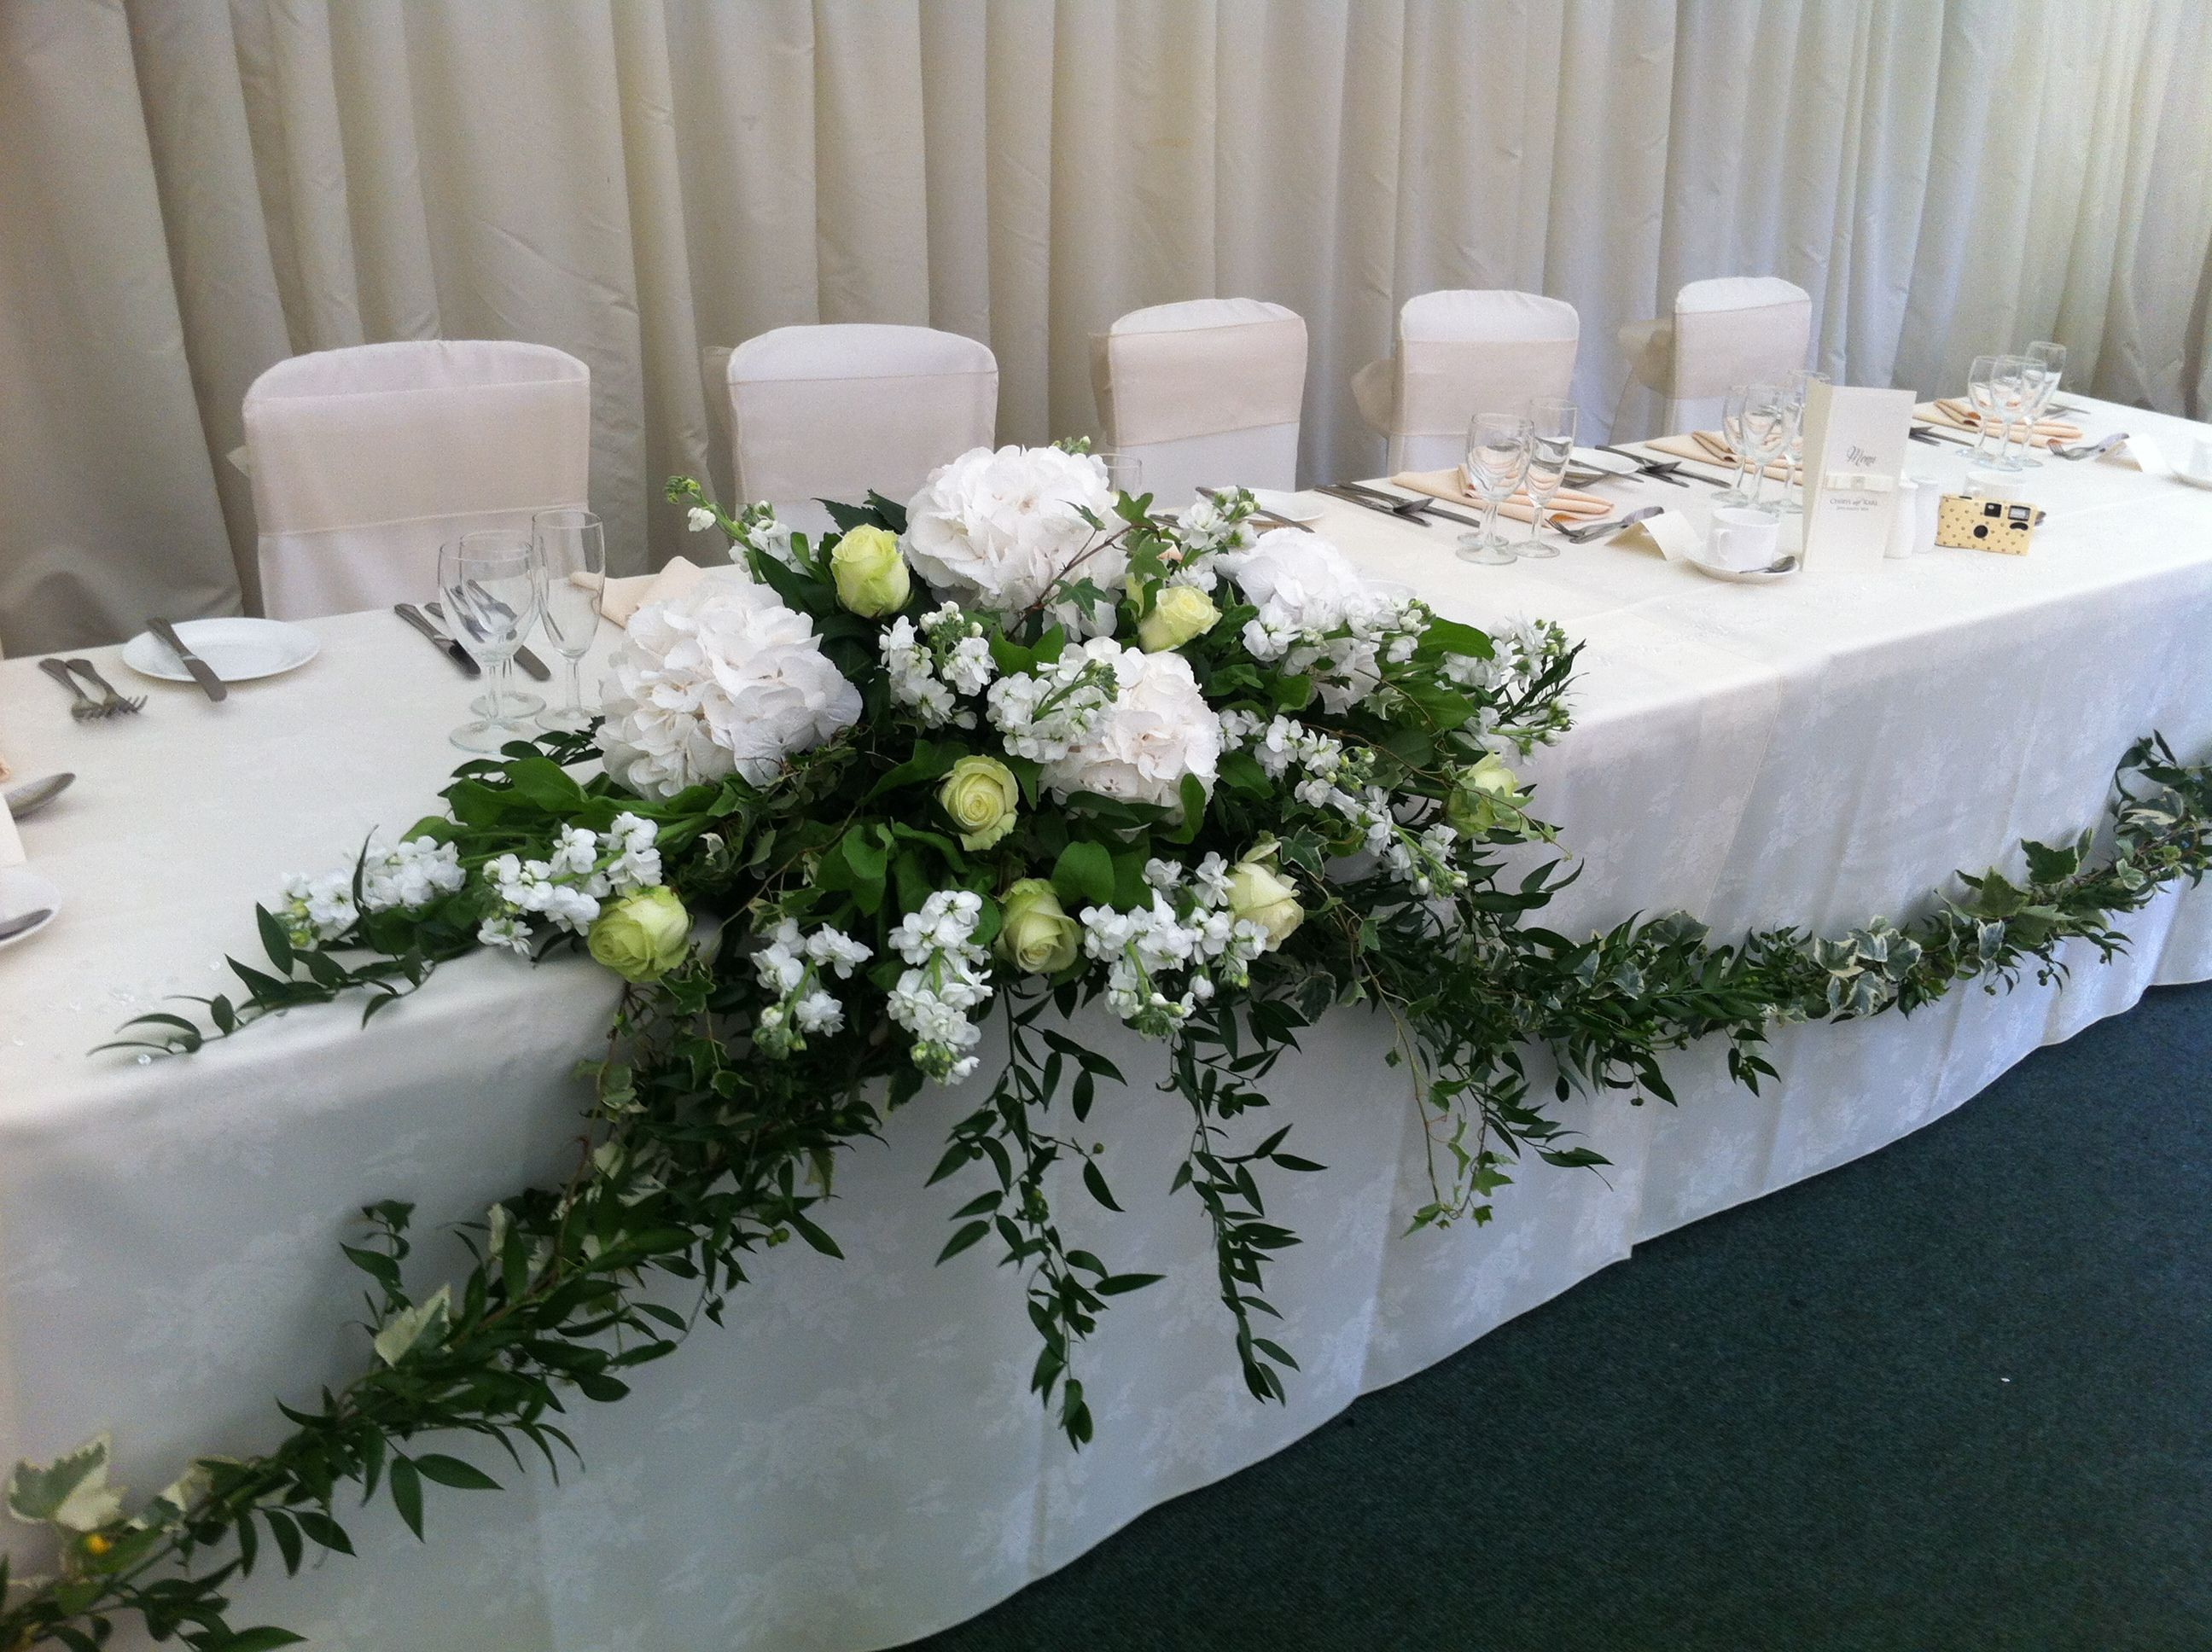 Top Table Arrangement And Foliage Garland, But Perhaps With Some Ivy Or  Something To Stop